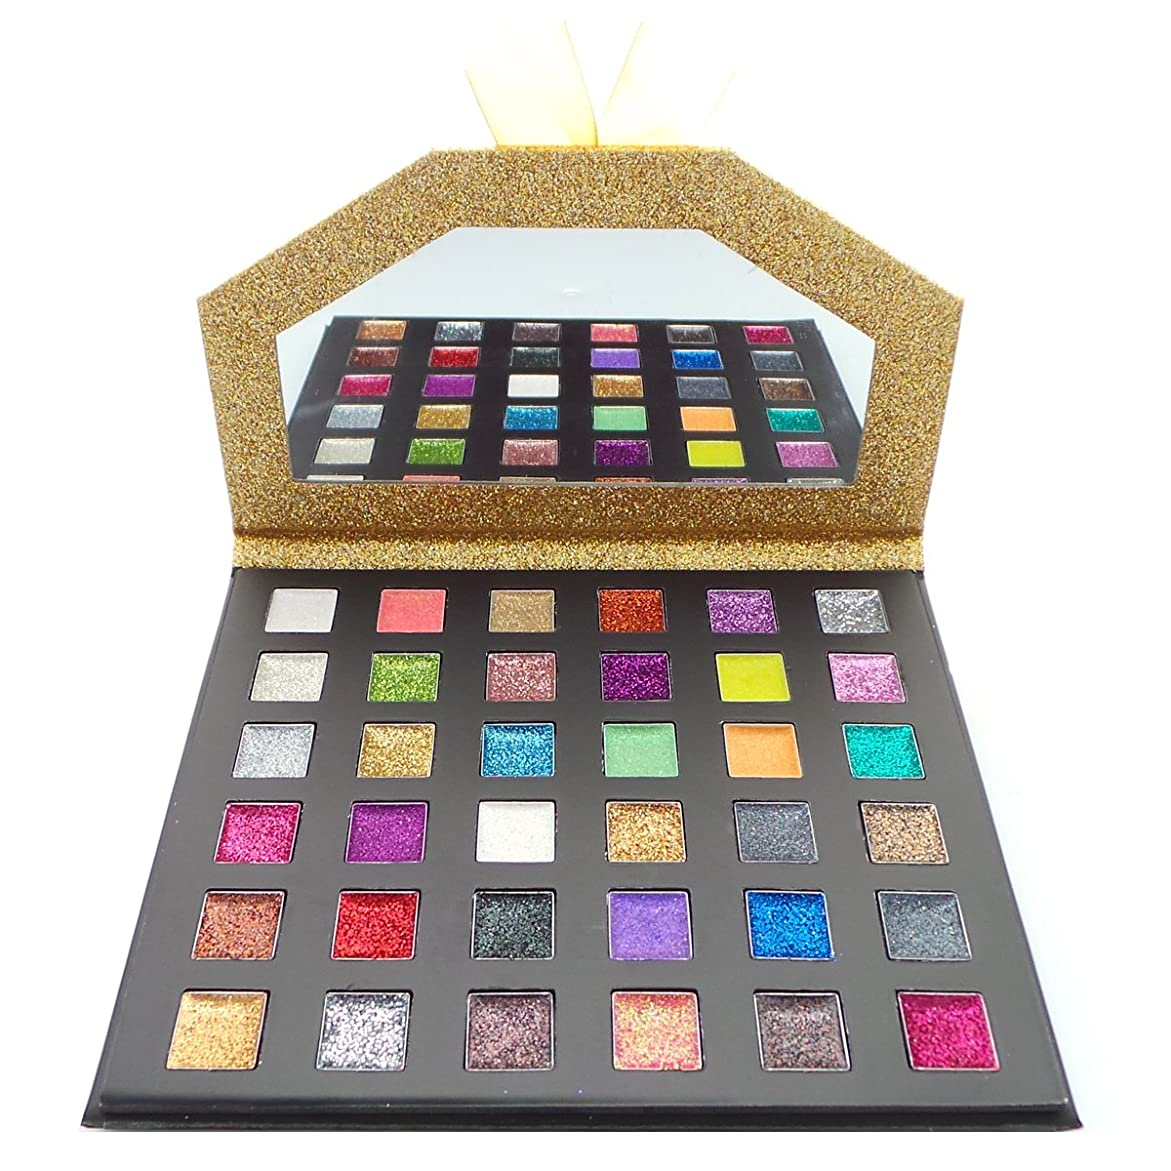 巻き戻す雷雨する(6 Pack) BEAUTY TREATS Glimmer Glitz Palette (並行輸入品)